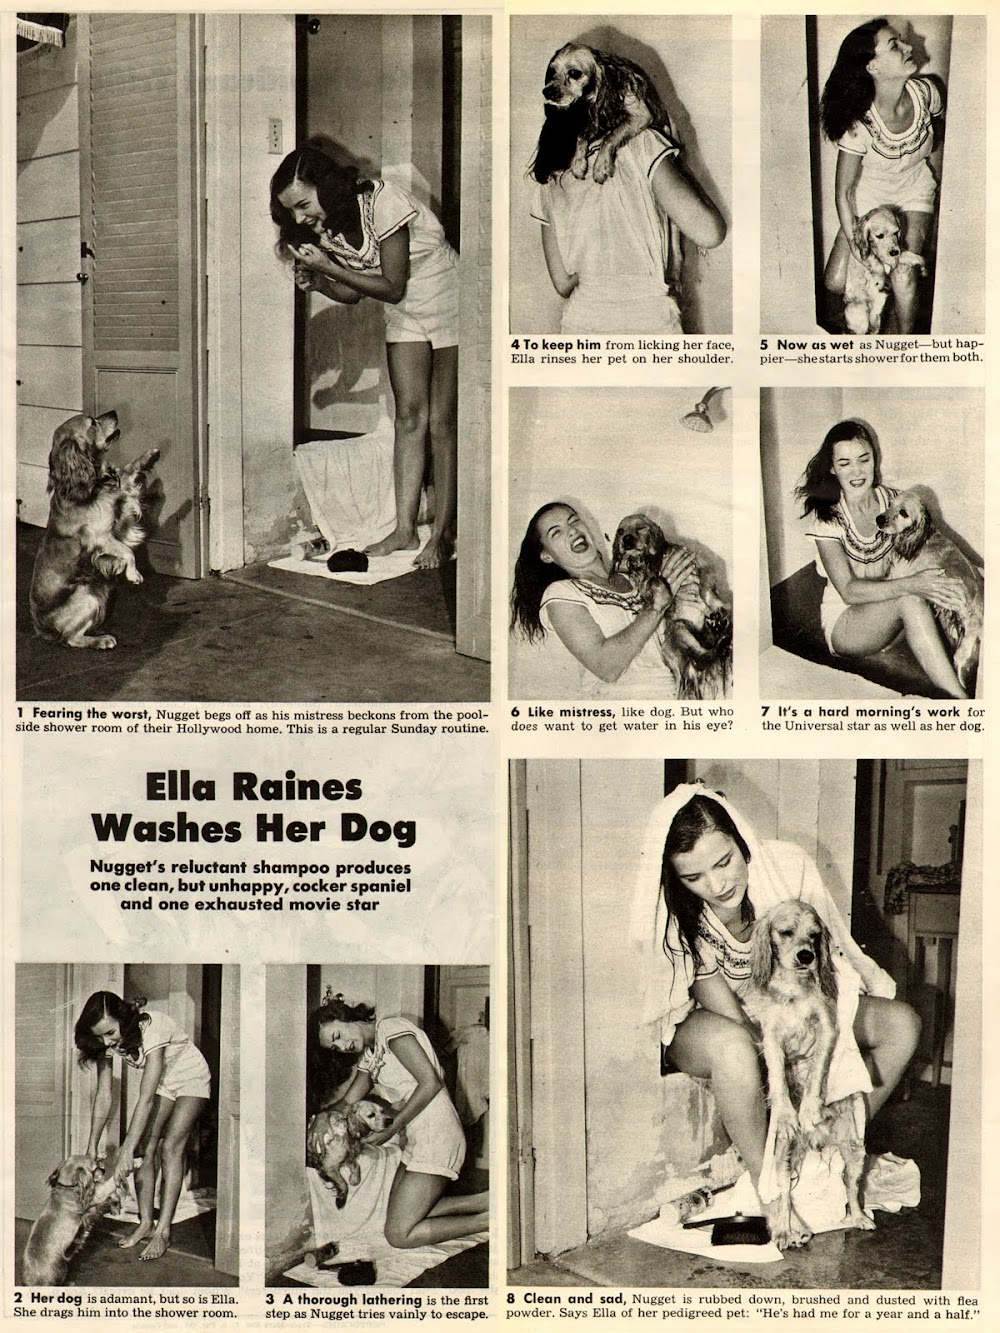 Ella Raines Washes Her Dog